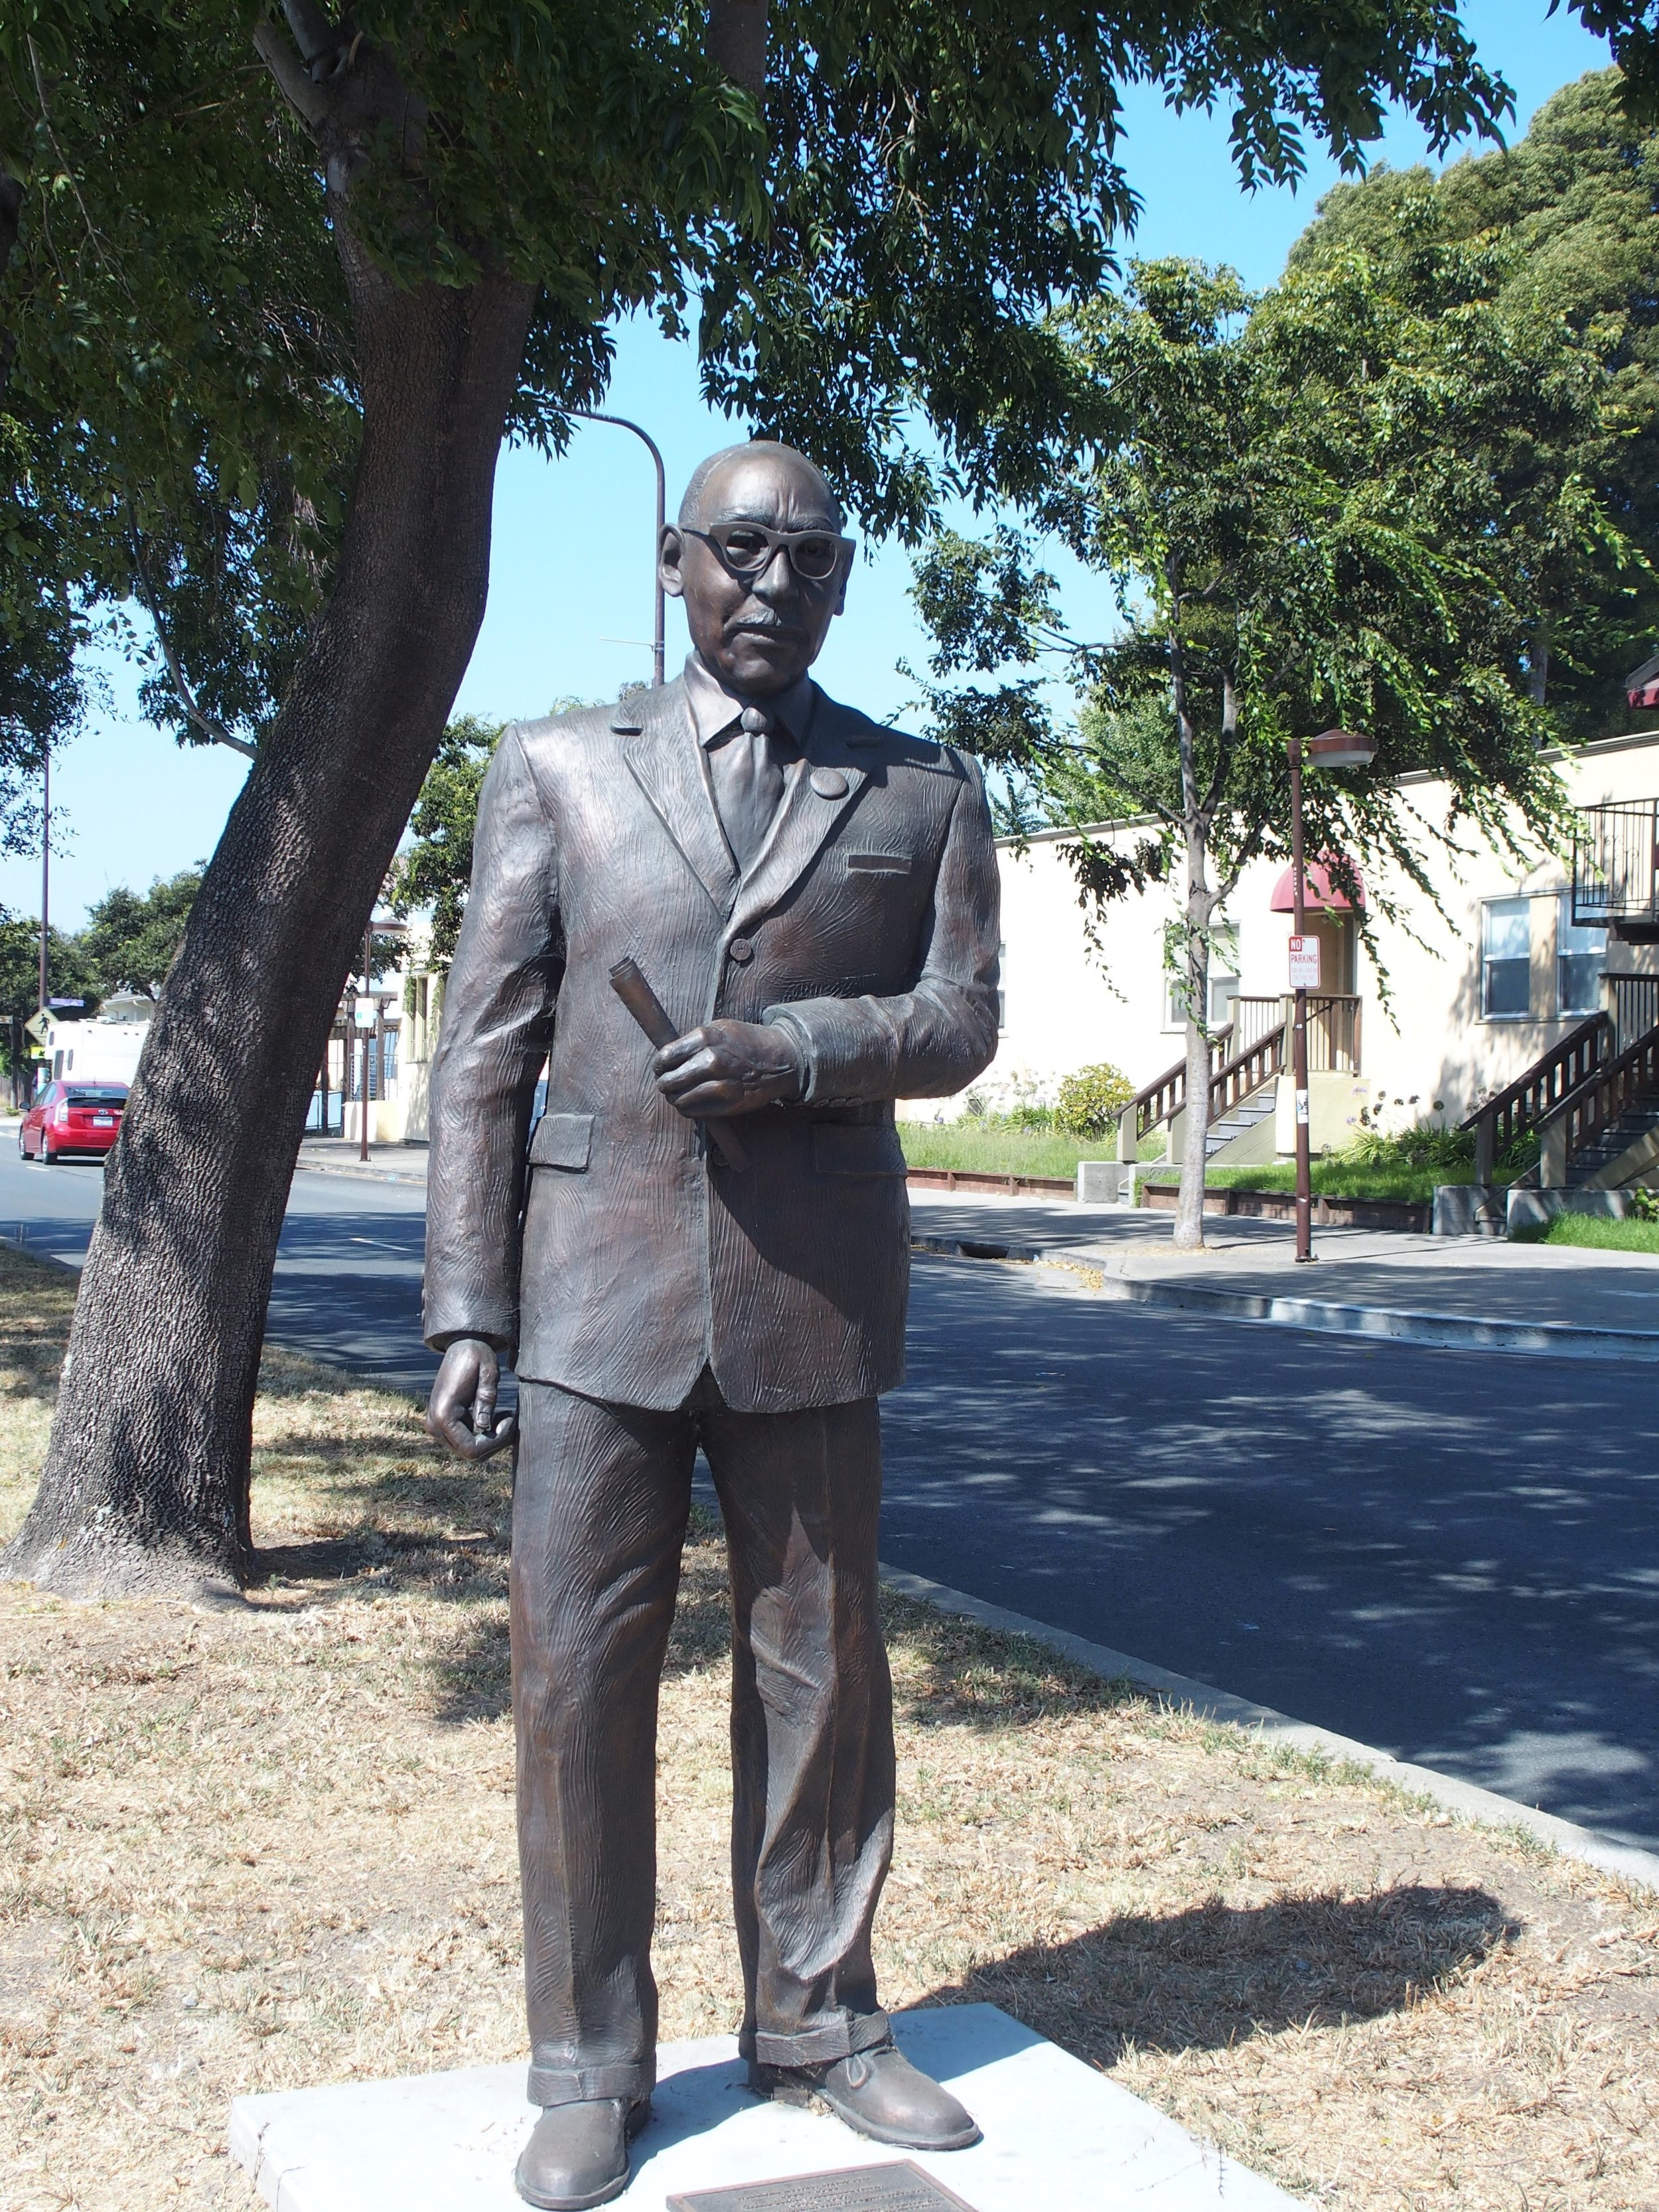 Statue of civil rights leader William Byron Rumford